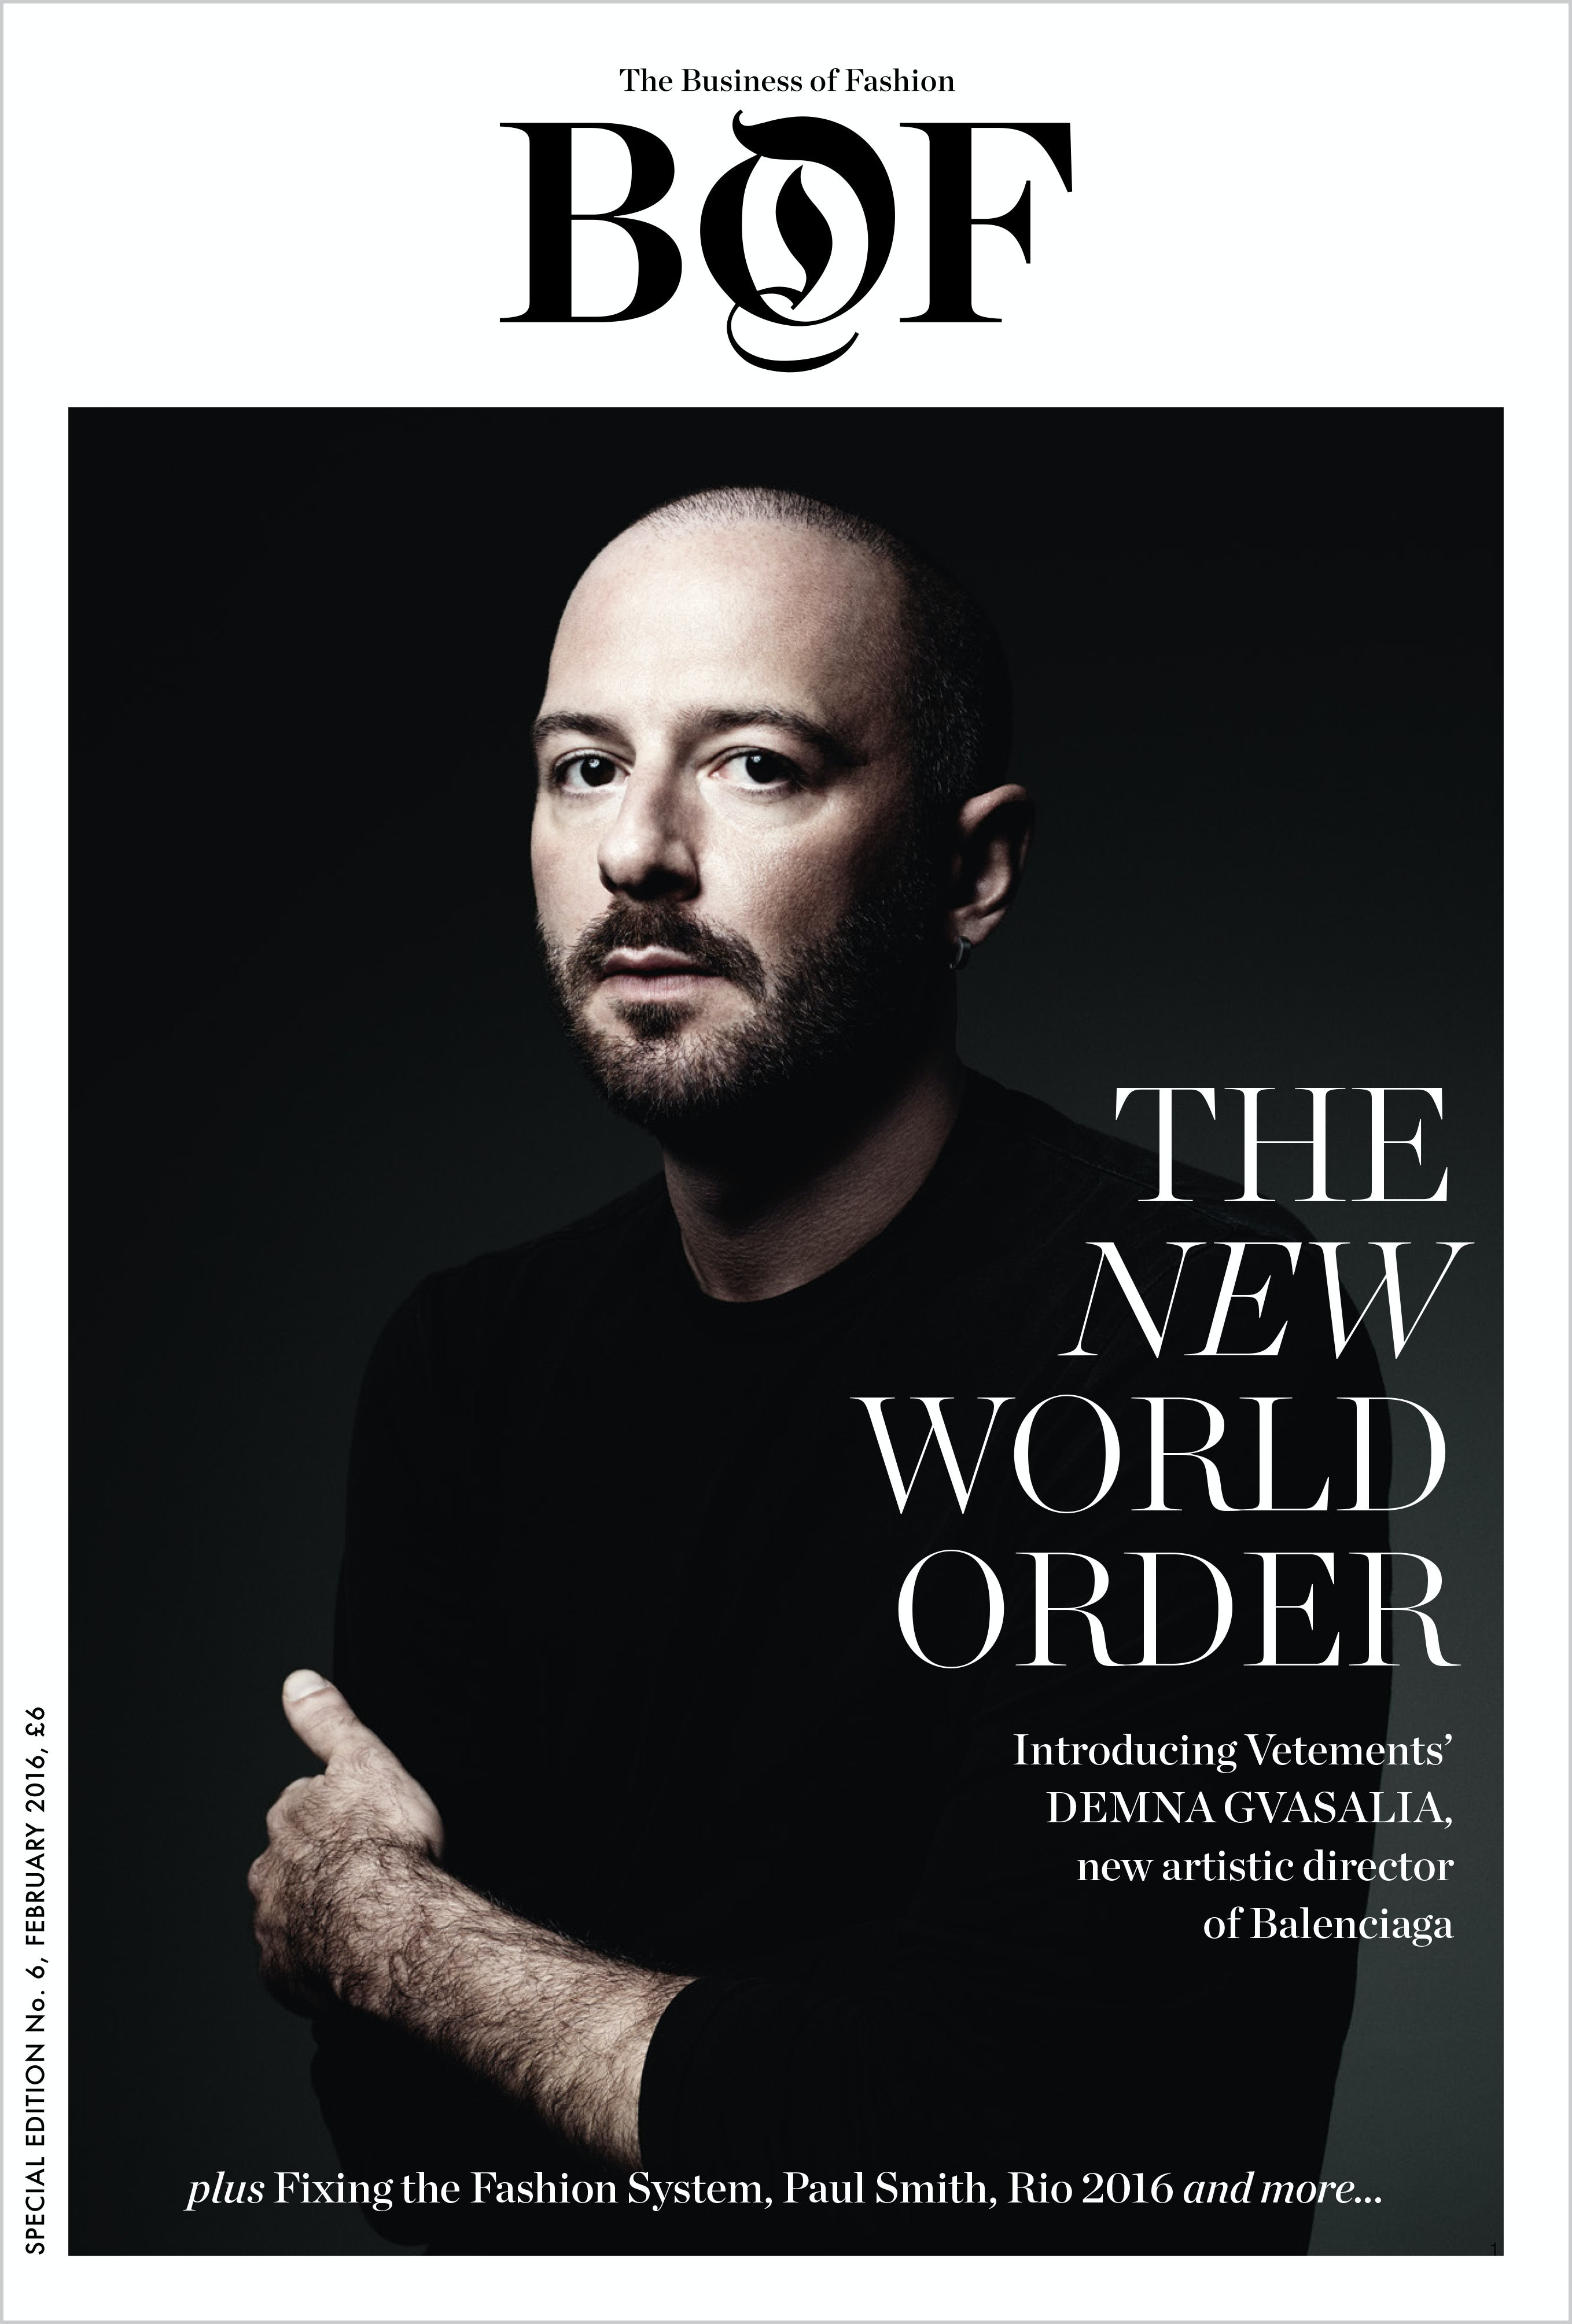 Cover of BoF's 'The New World Order' Special Print Edition, featuring Demna Dvasalia photographed by Willy Vanderperre